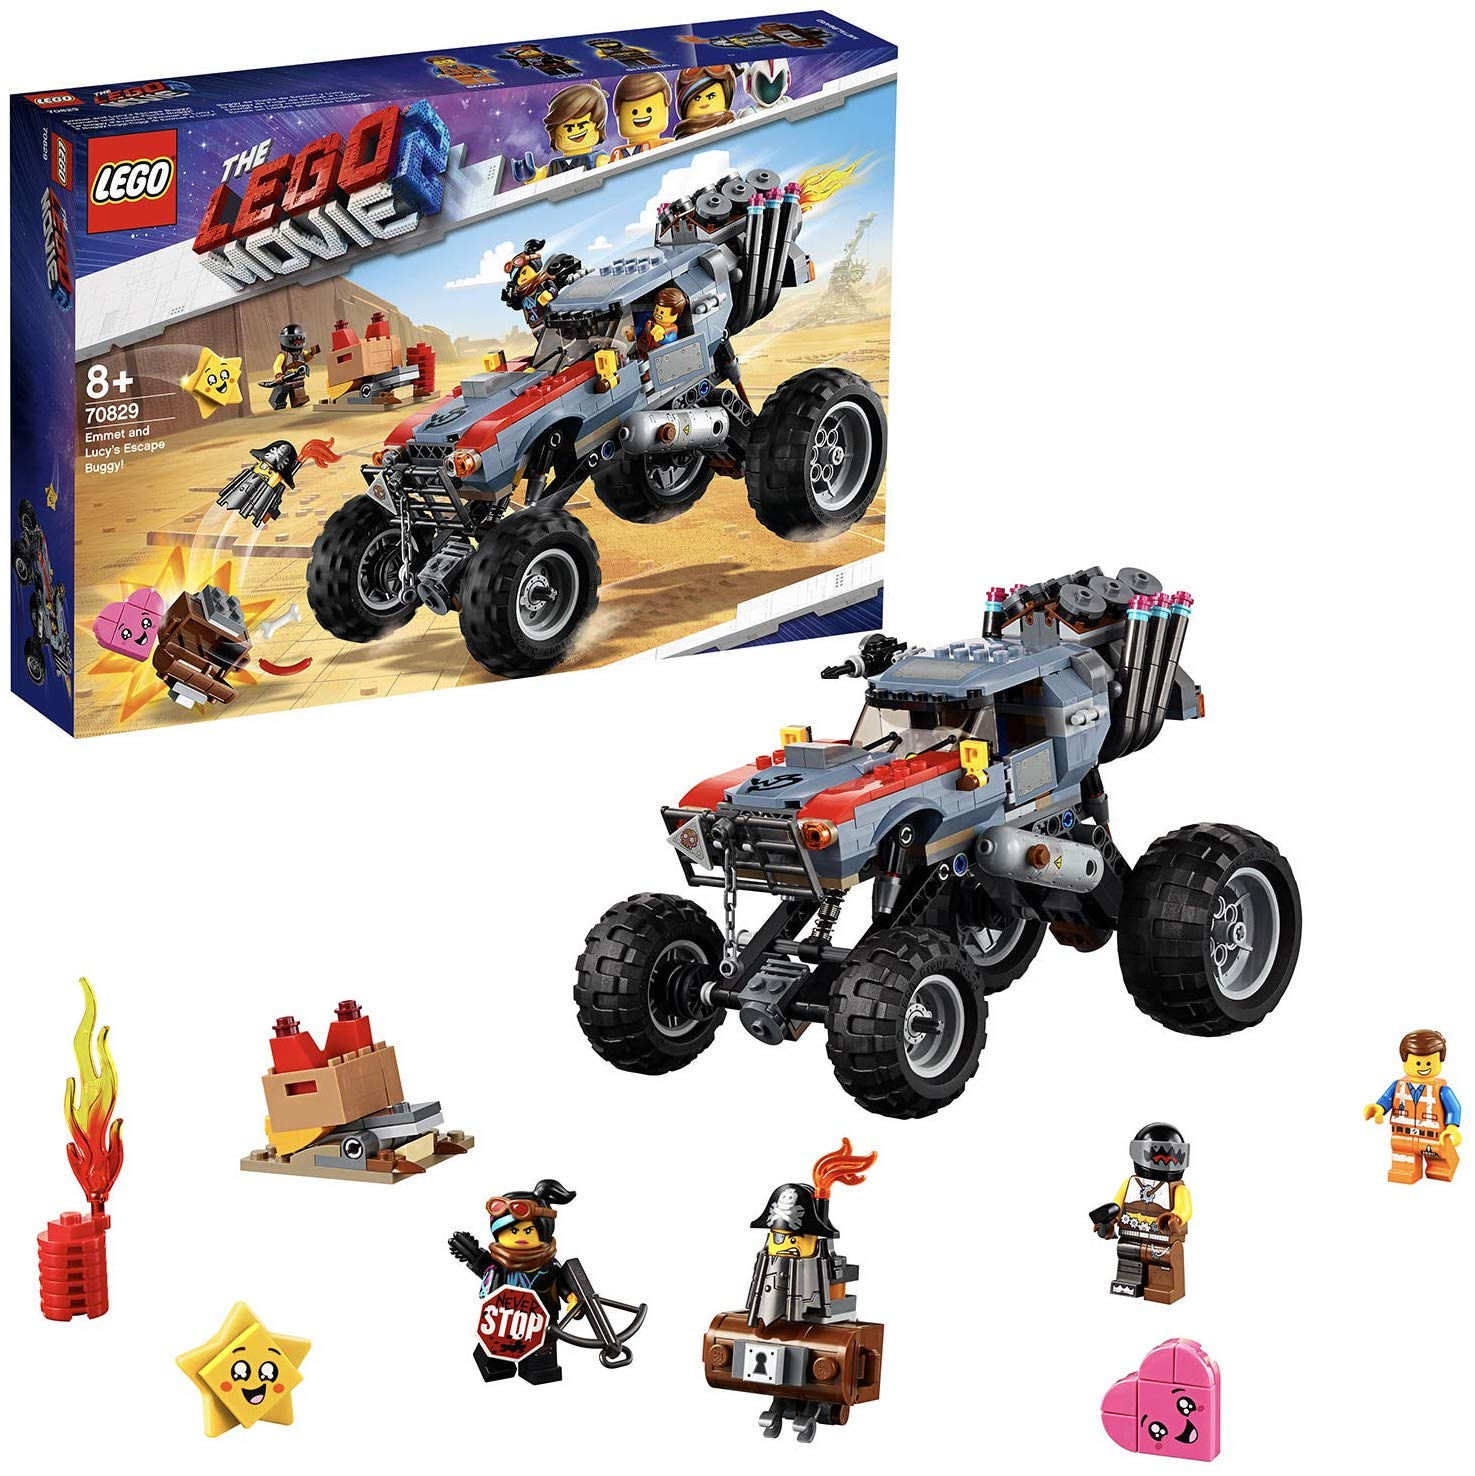 LEGO 70829 Movie 2 Exploding Vehicle Construction Set